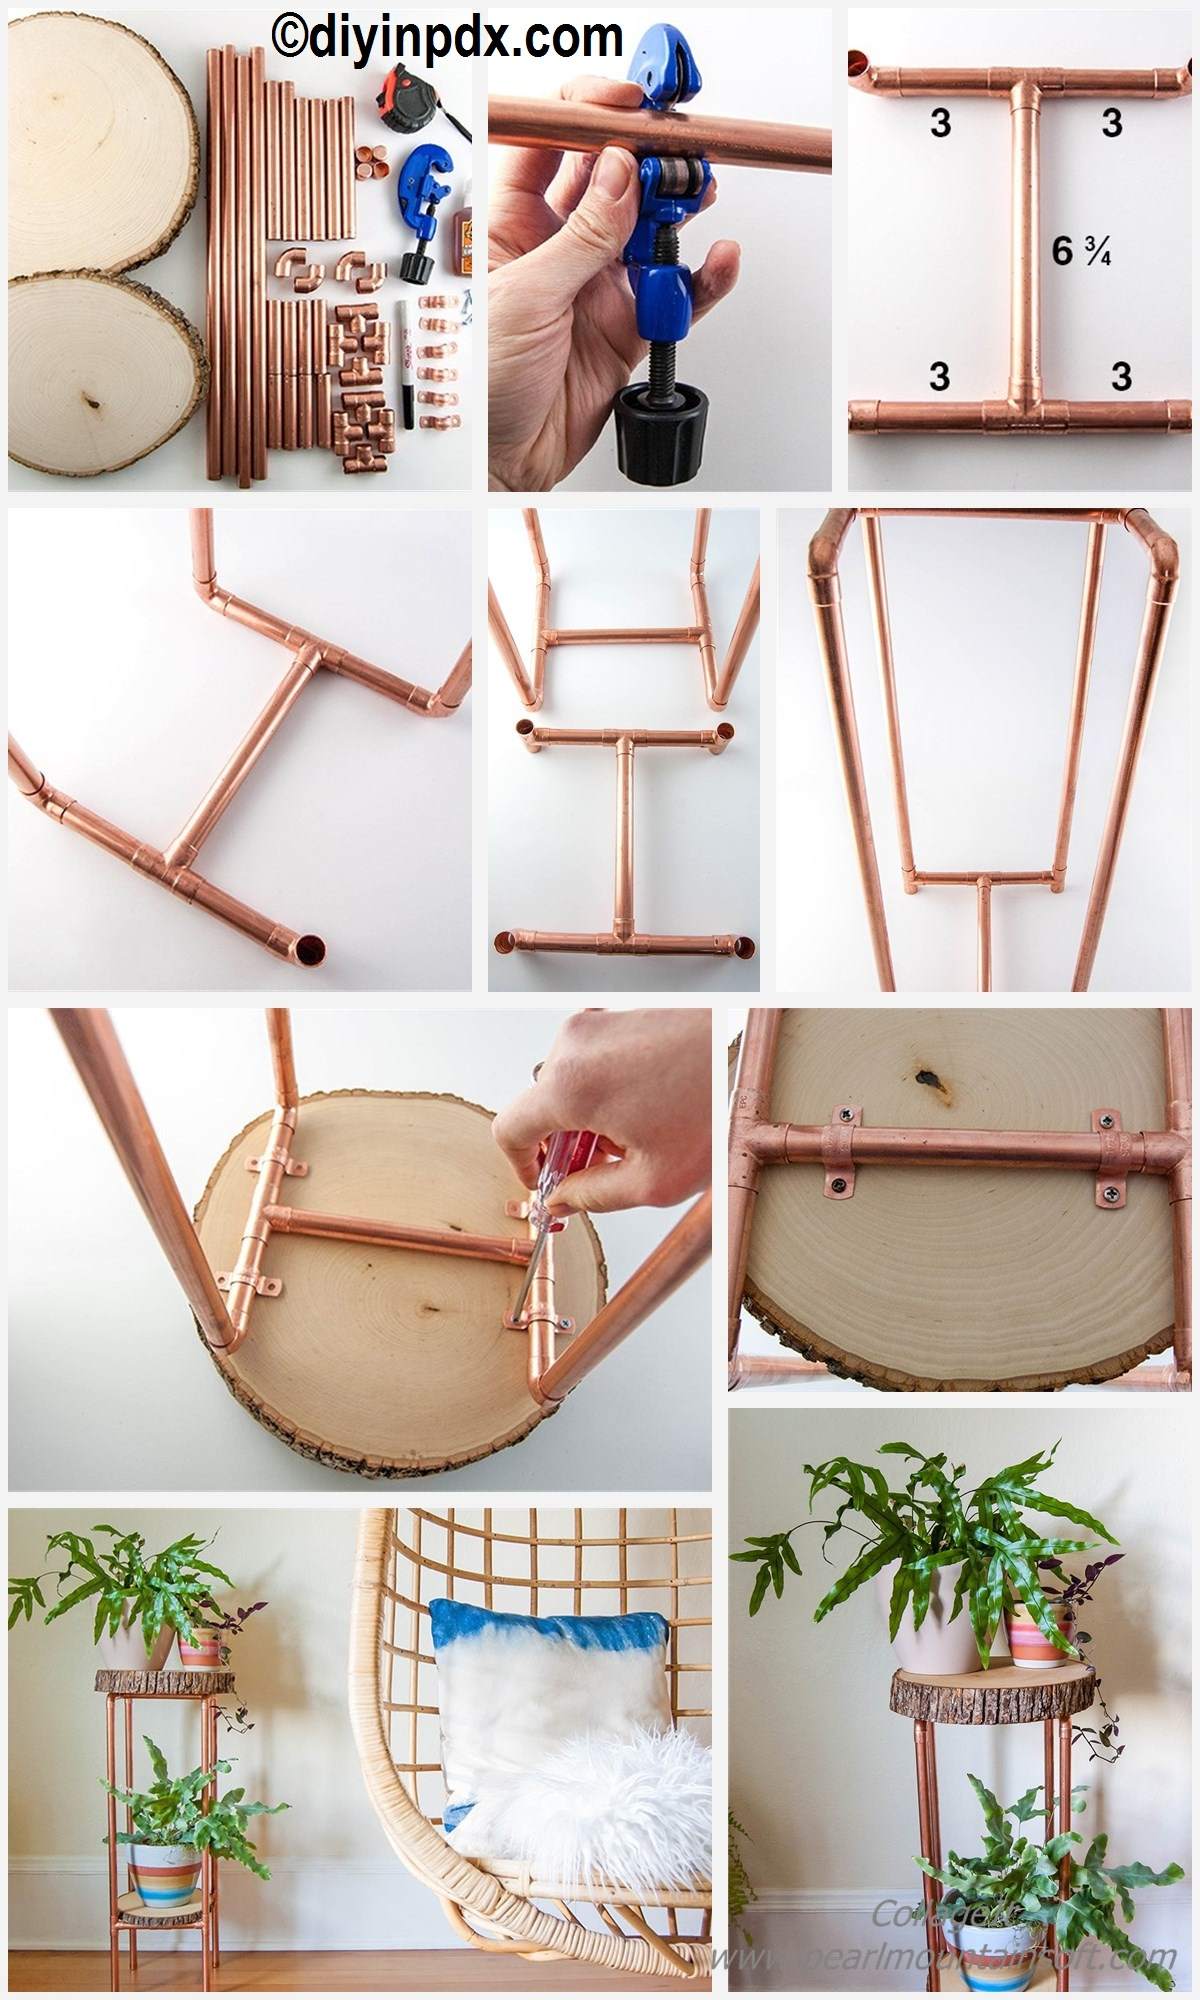 How to make a Copper Pipe Wood Slice Table